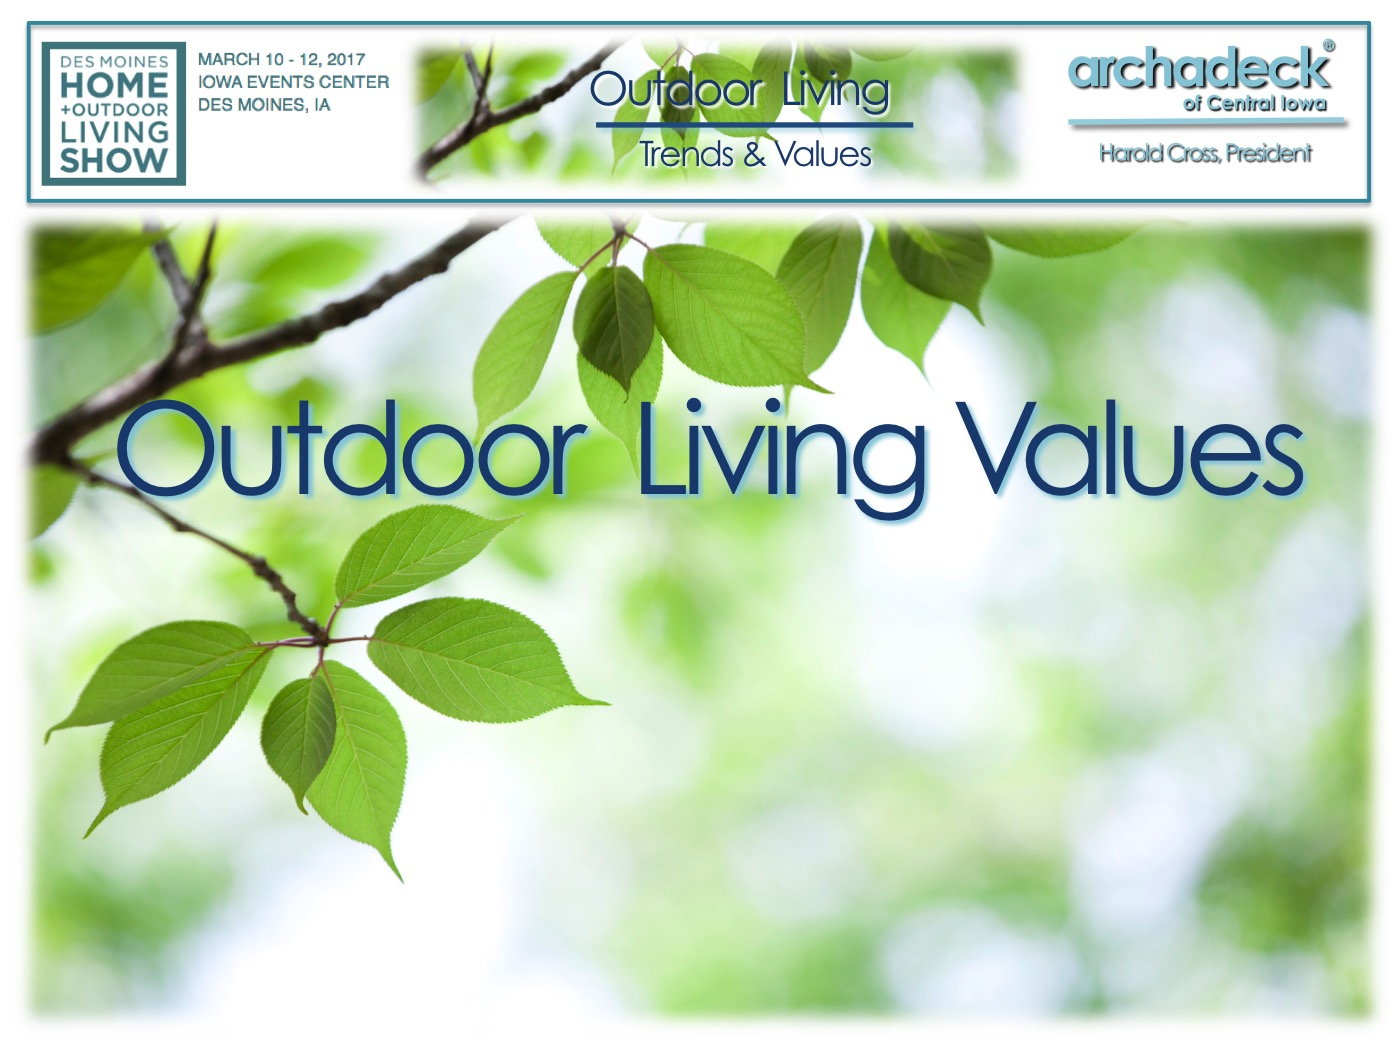 Archadeck - 2017 Home+Outdoor Living Show Presentation - Outdoor Living Values  Thumbnail